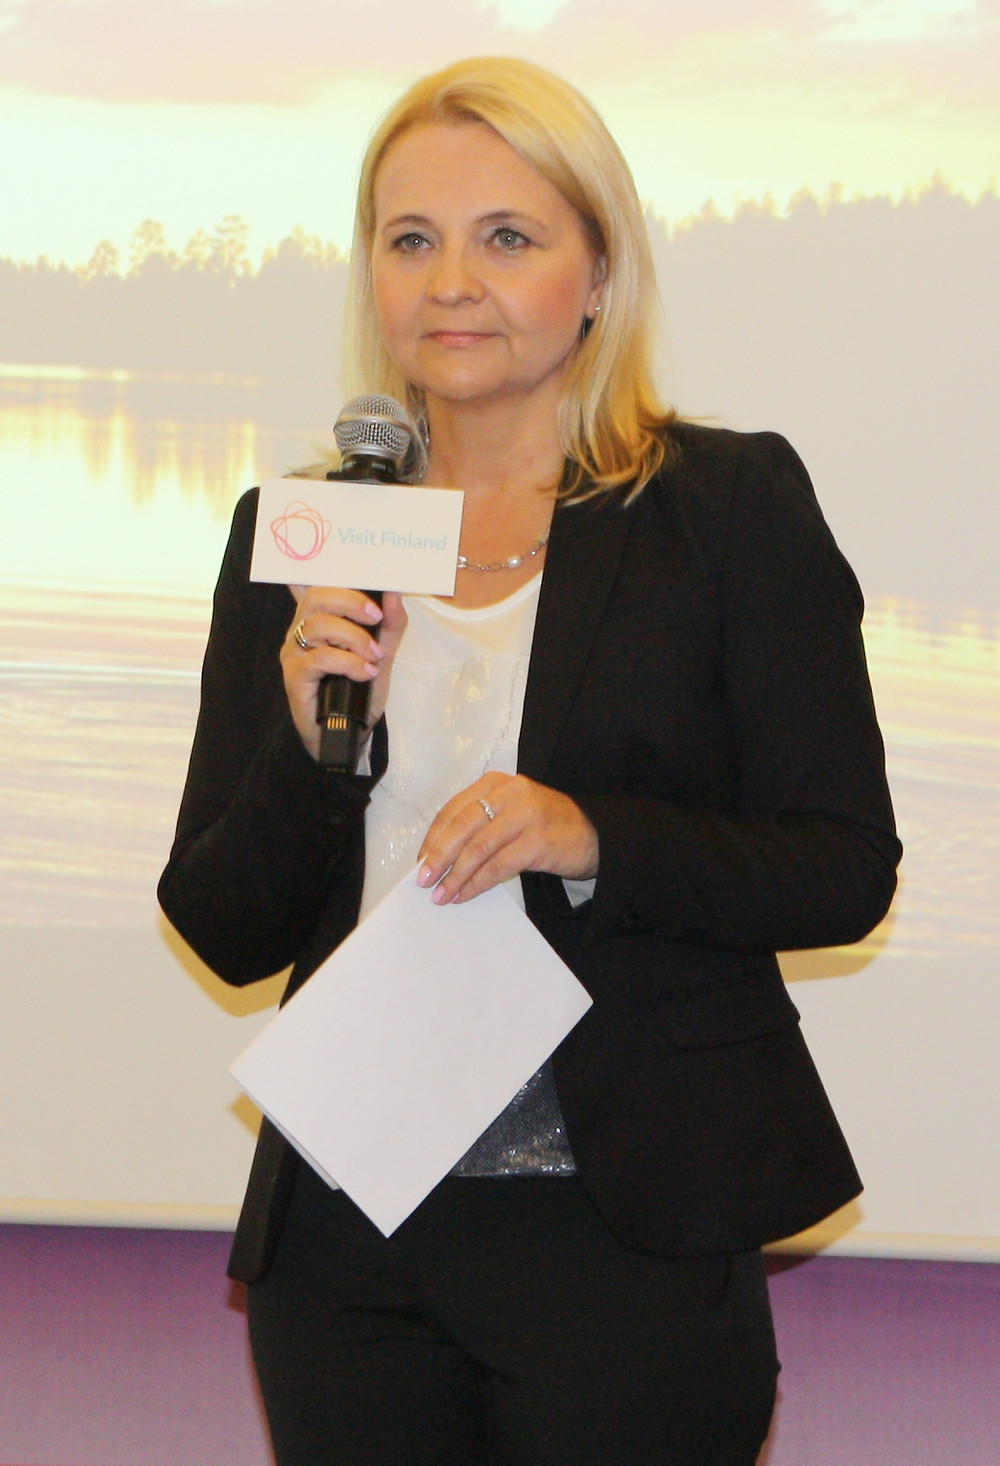 Heli Mende, head of Visit Finland for North America